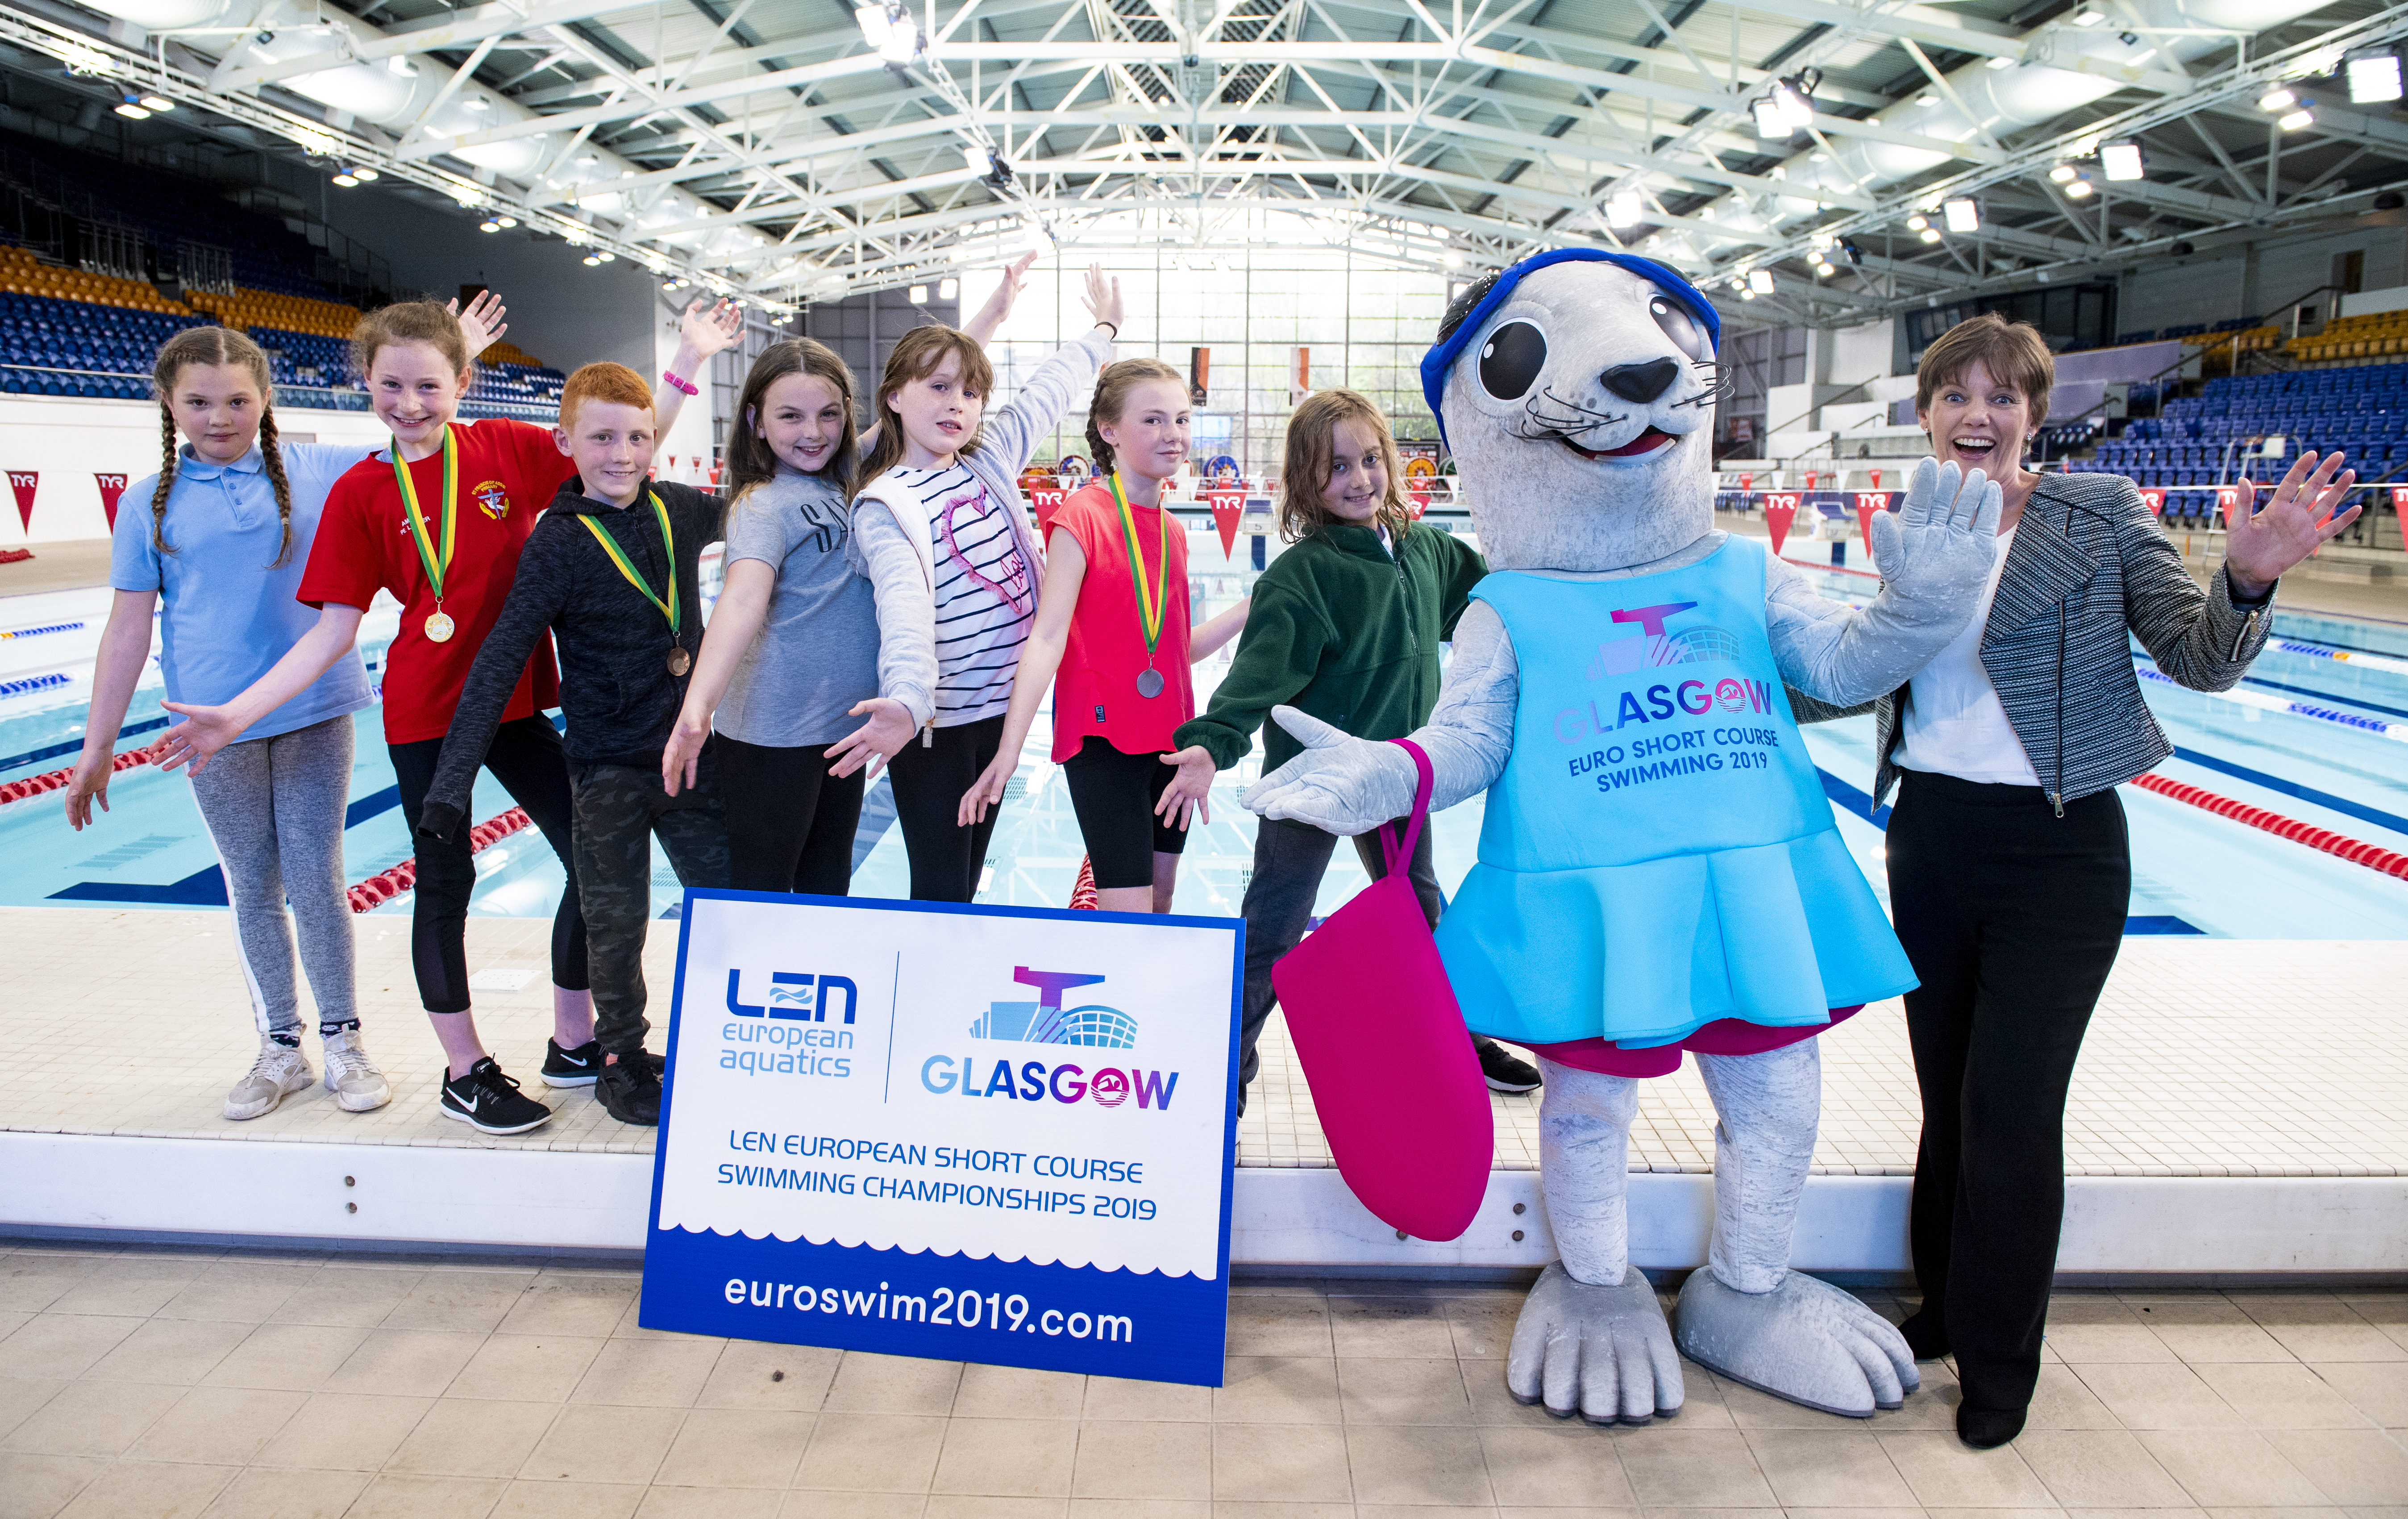 Bonnie's amazing adventures lead her back to Glasgow for LEN European Short Course Swimming Championships